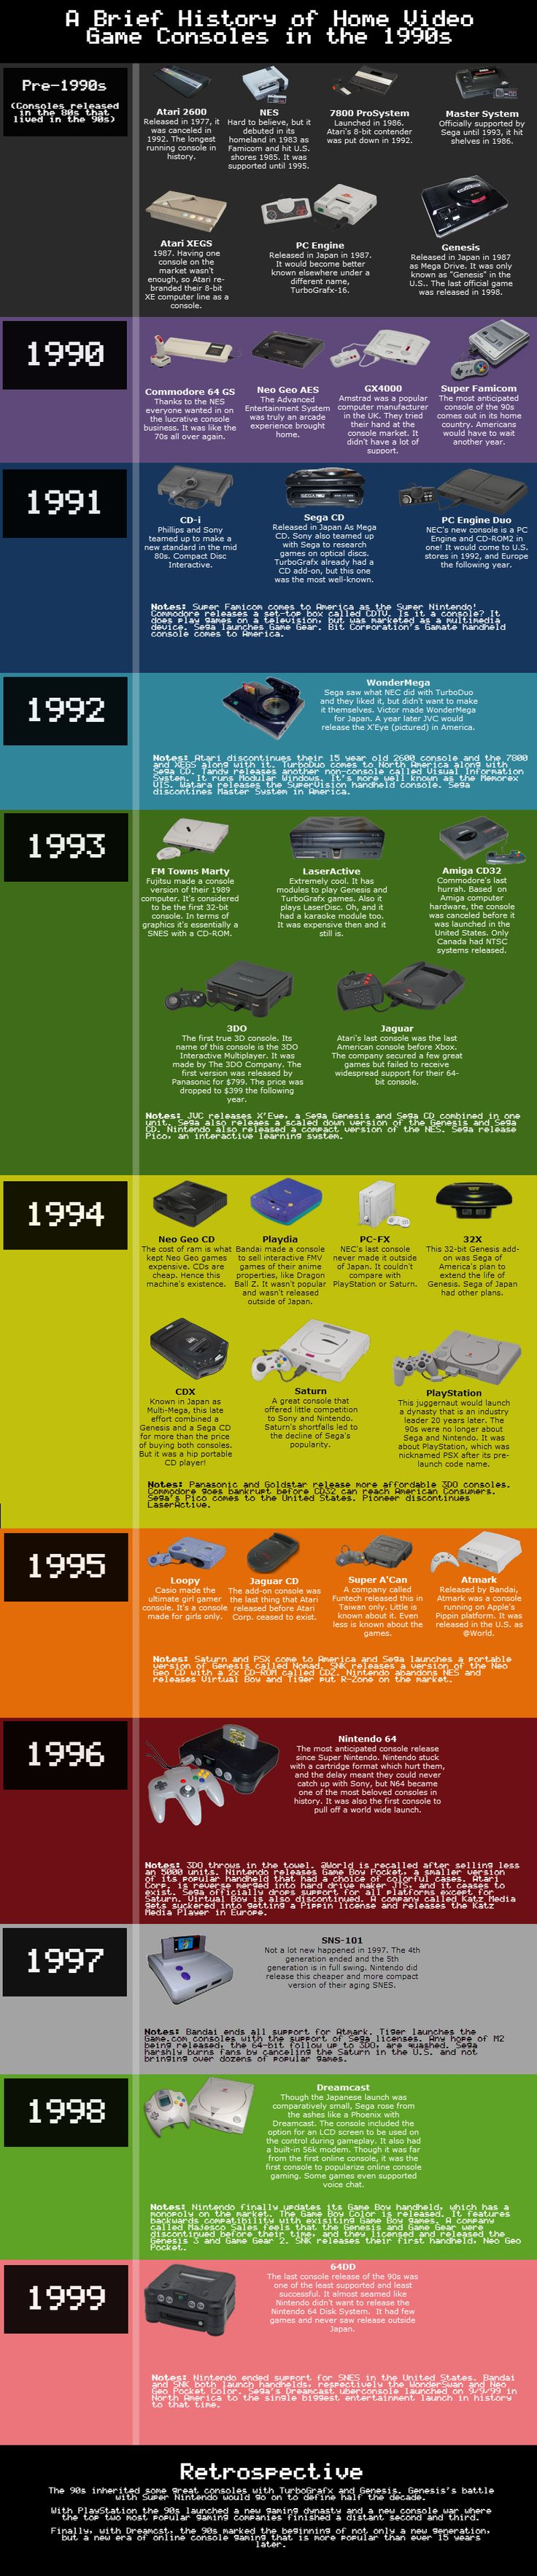 A Brief History of Home Video Game Consoles In the 1990s